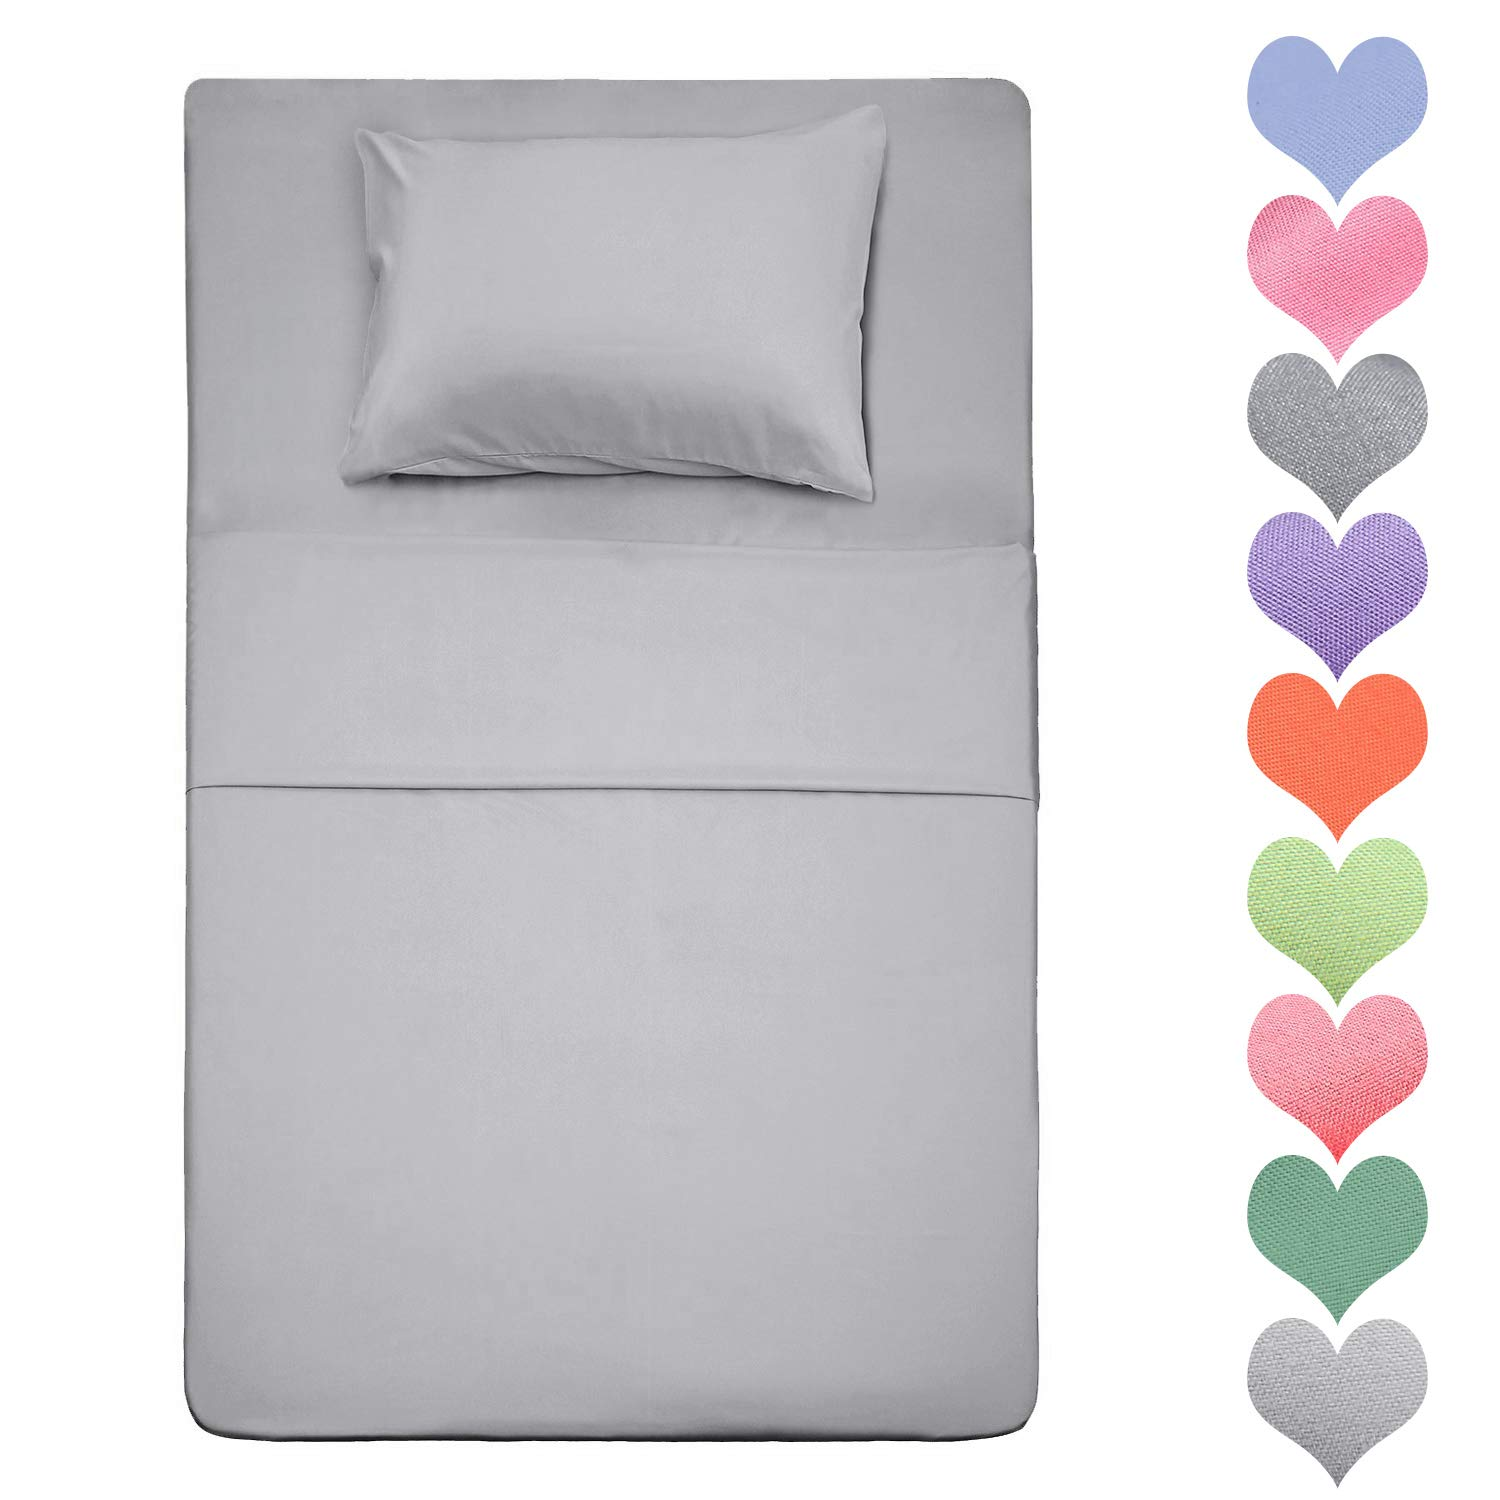 Best Season 400 Thread Count Cotton Twin Size Sheet Set (Silver Gray Color) 3 Piece - 100% Long Staple Cotton Sheets Set, Soft Cotton Bed Sheets Sets with Deep Pocket fit Up to 16 inch